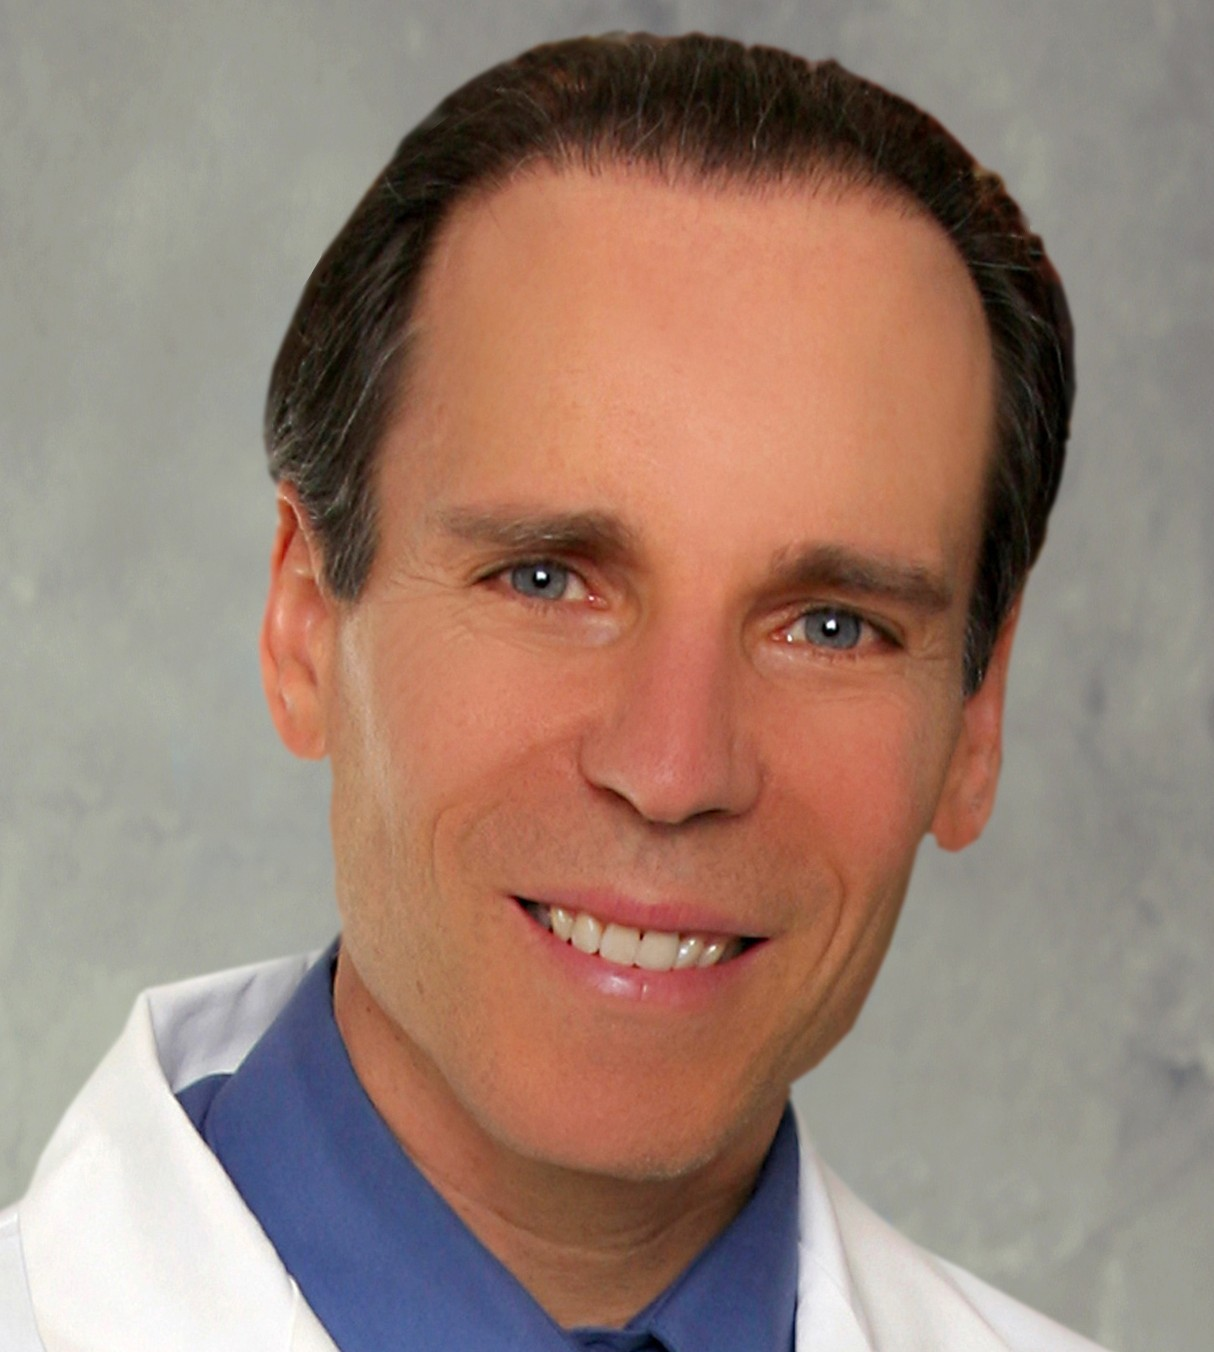 Dr. Fuhrman's Tips for Healthy Eating with a Nutritarian Plant-Based Diet